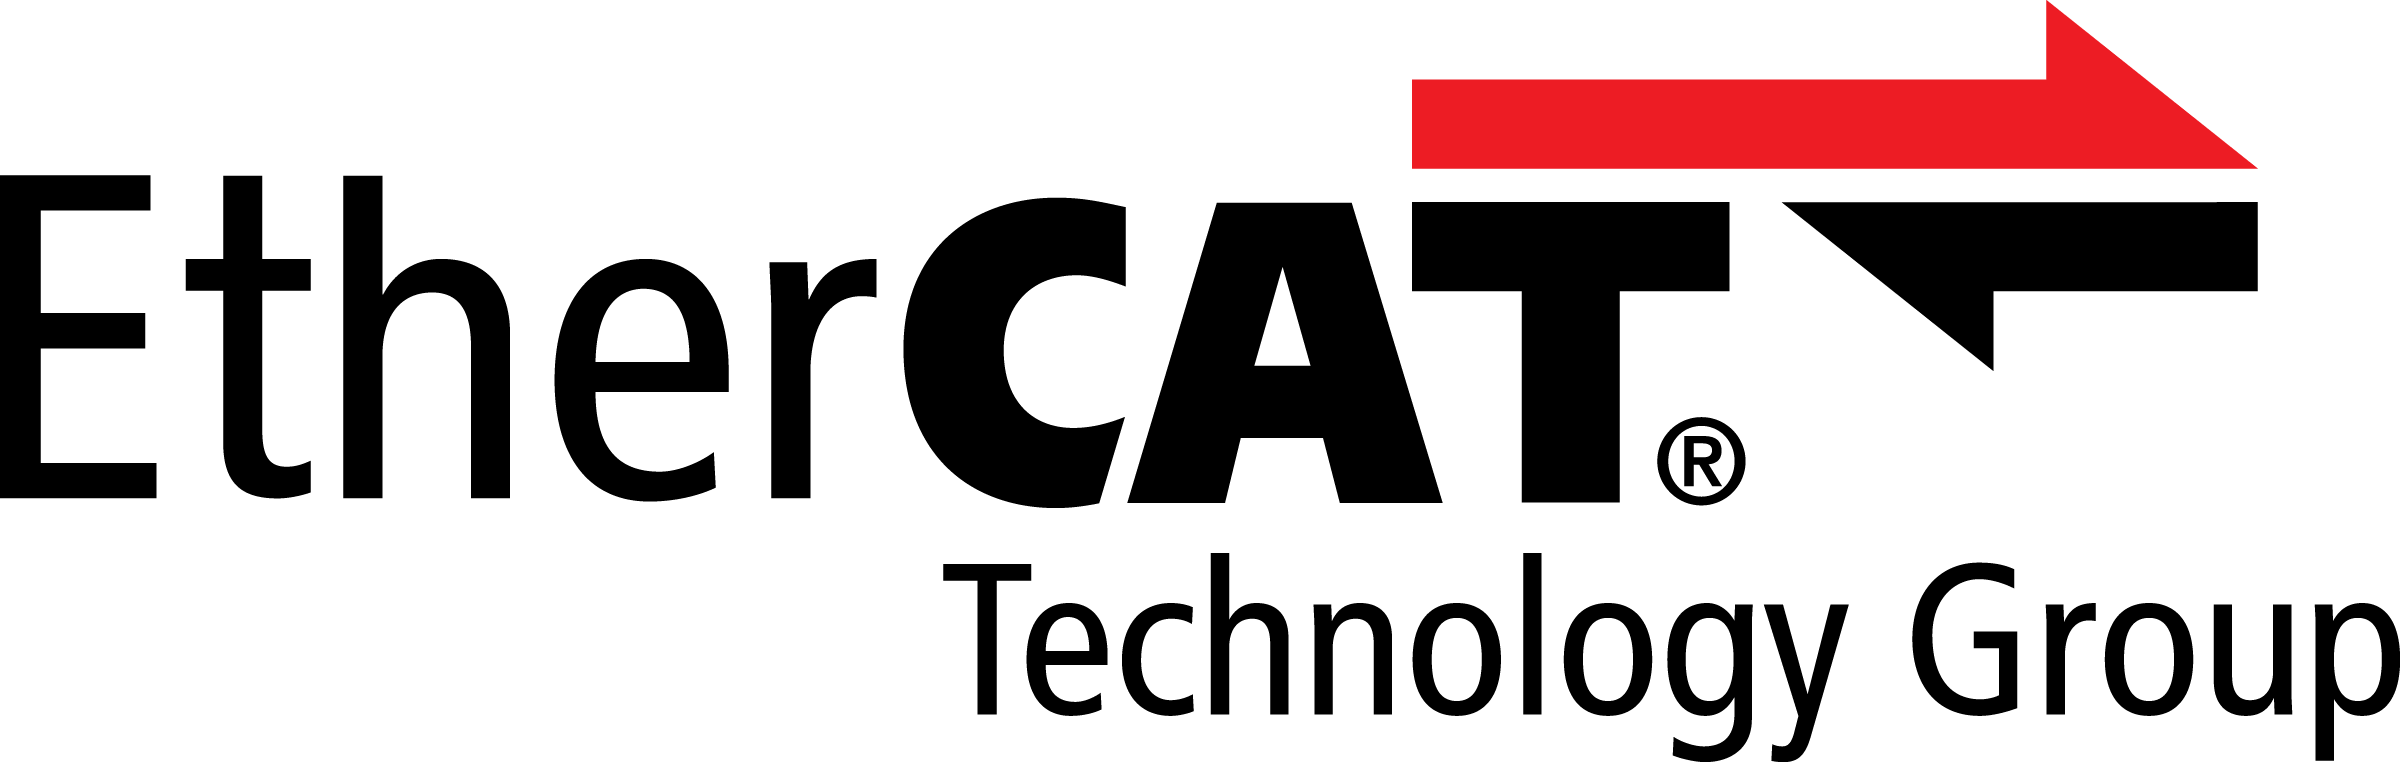 EtherCAT technology group logo